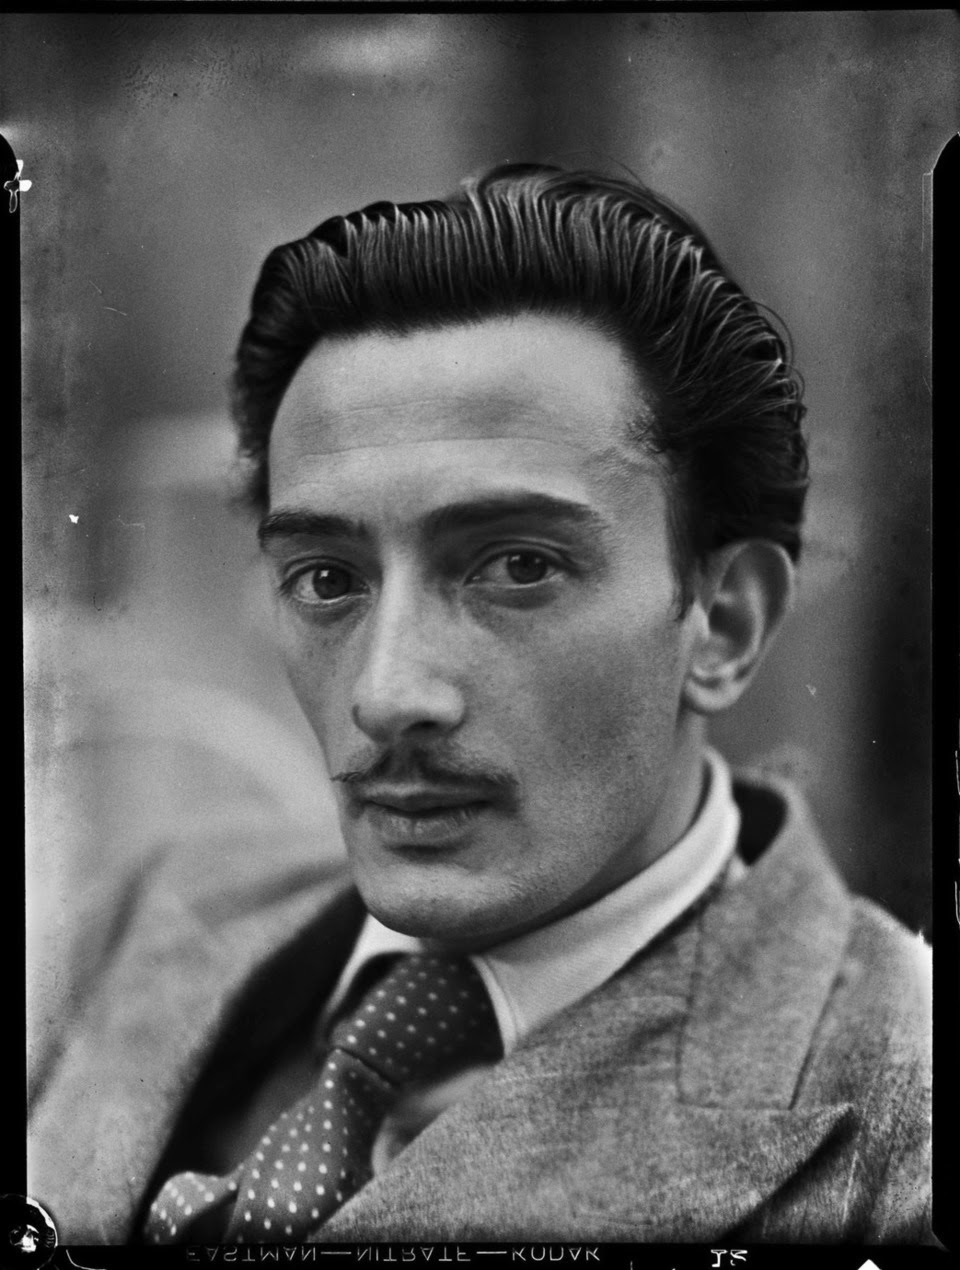 16 Interesting Portrait Photos Of A Young Salvador Dali - Salvatore Dali